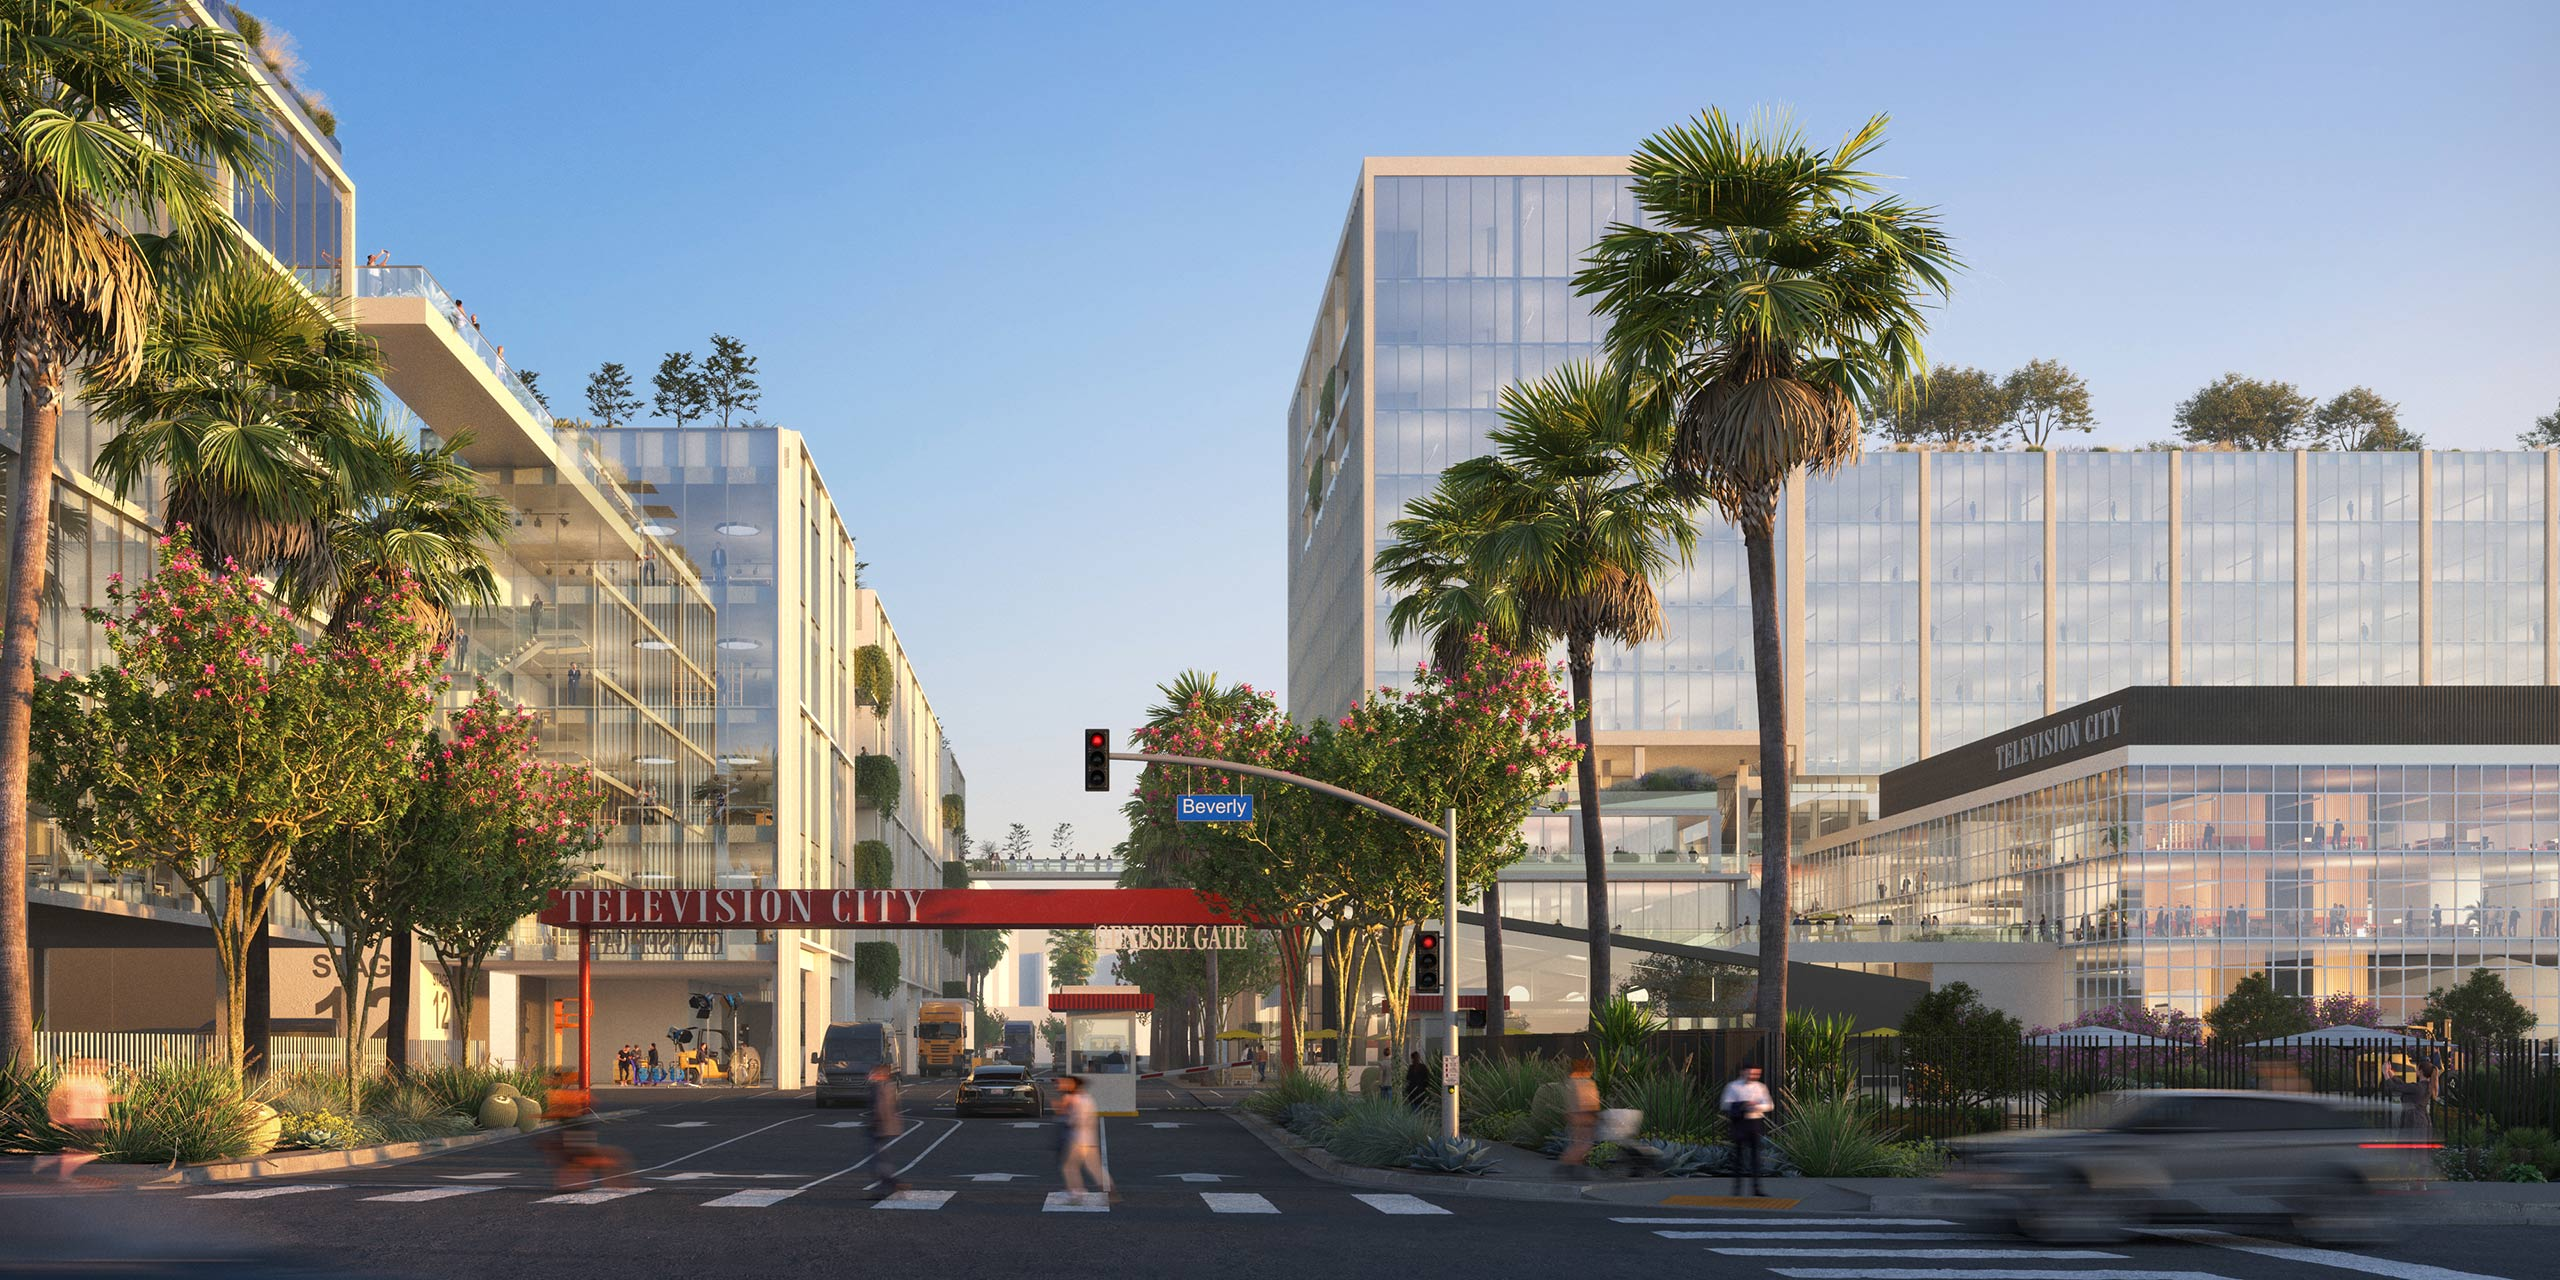 The proposed entrance and genessee gate at Television City 2050 featuring an enhanced landscape and urban activity